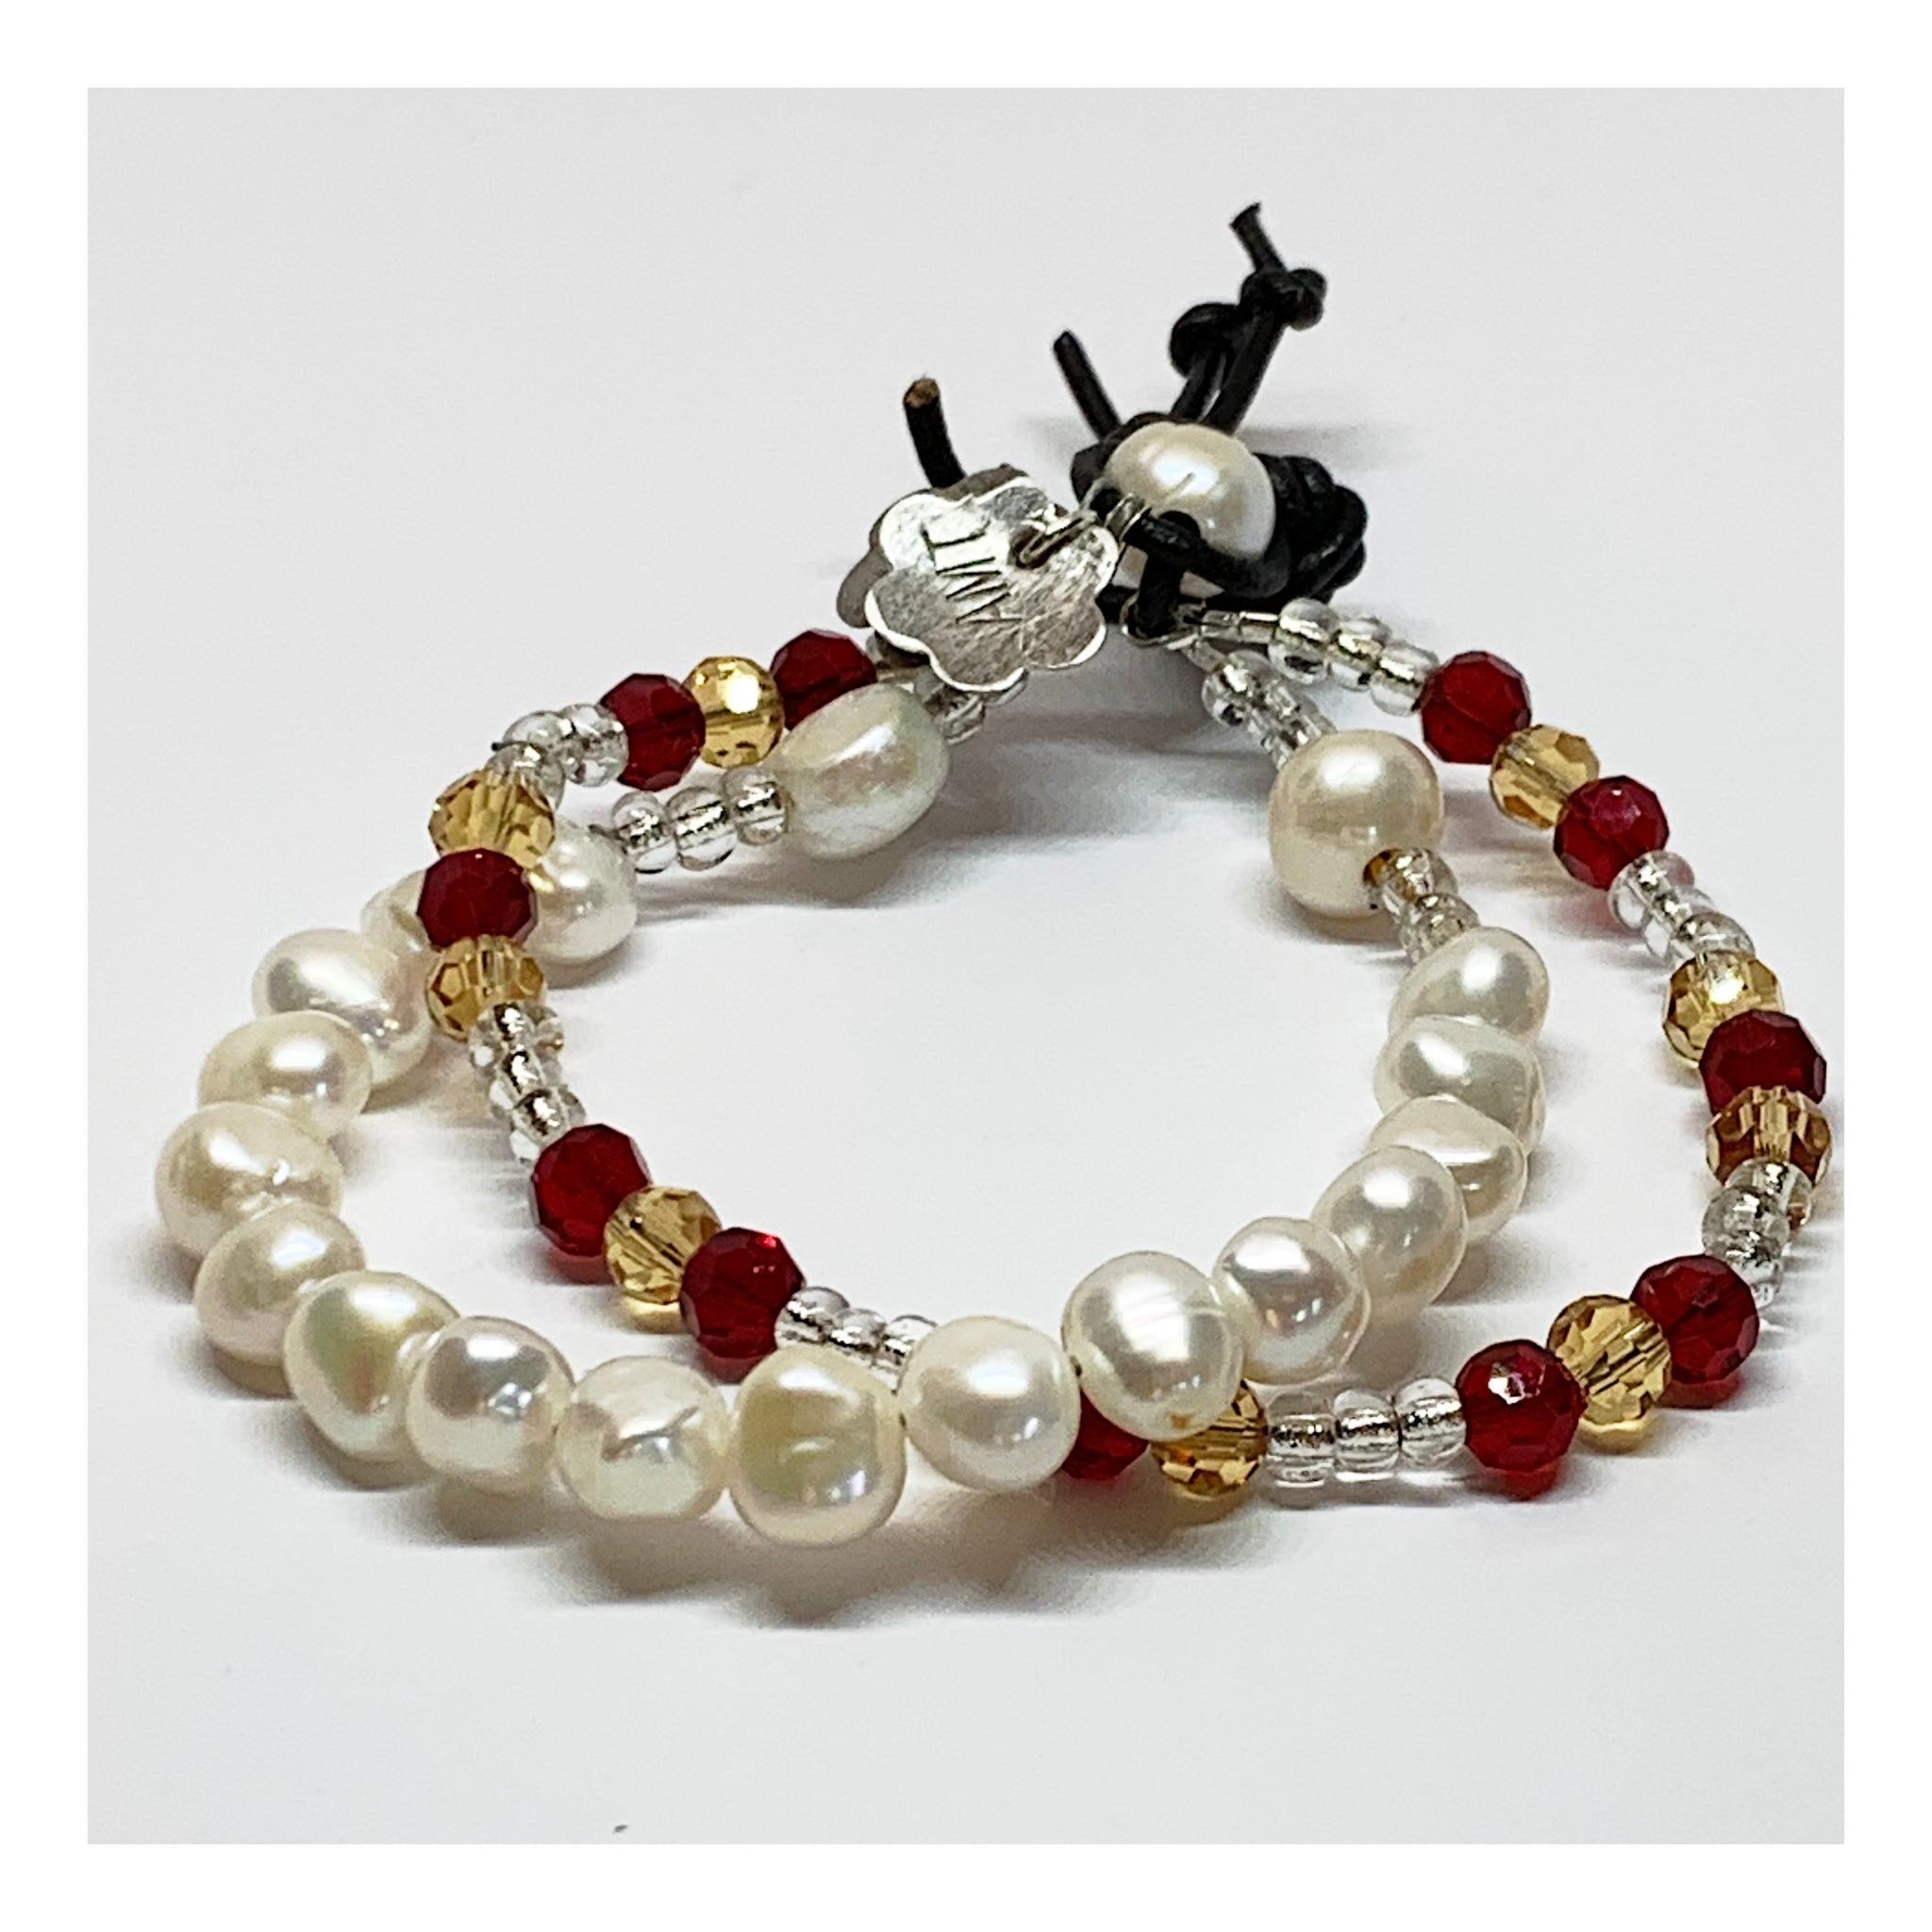 Contemporary Pearl and Crystal Bead Bracelet - Elegant Jewelry Gift